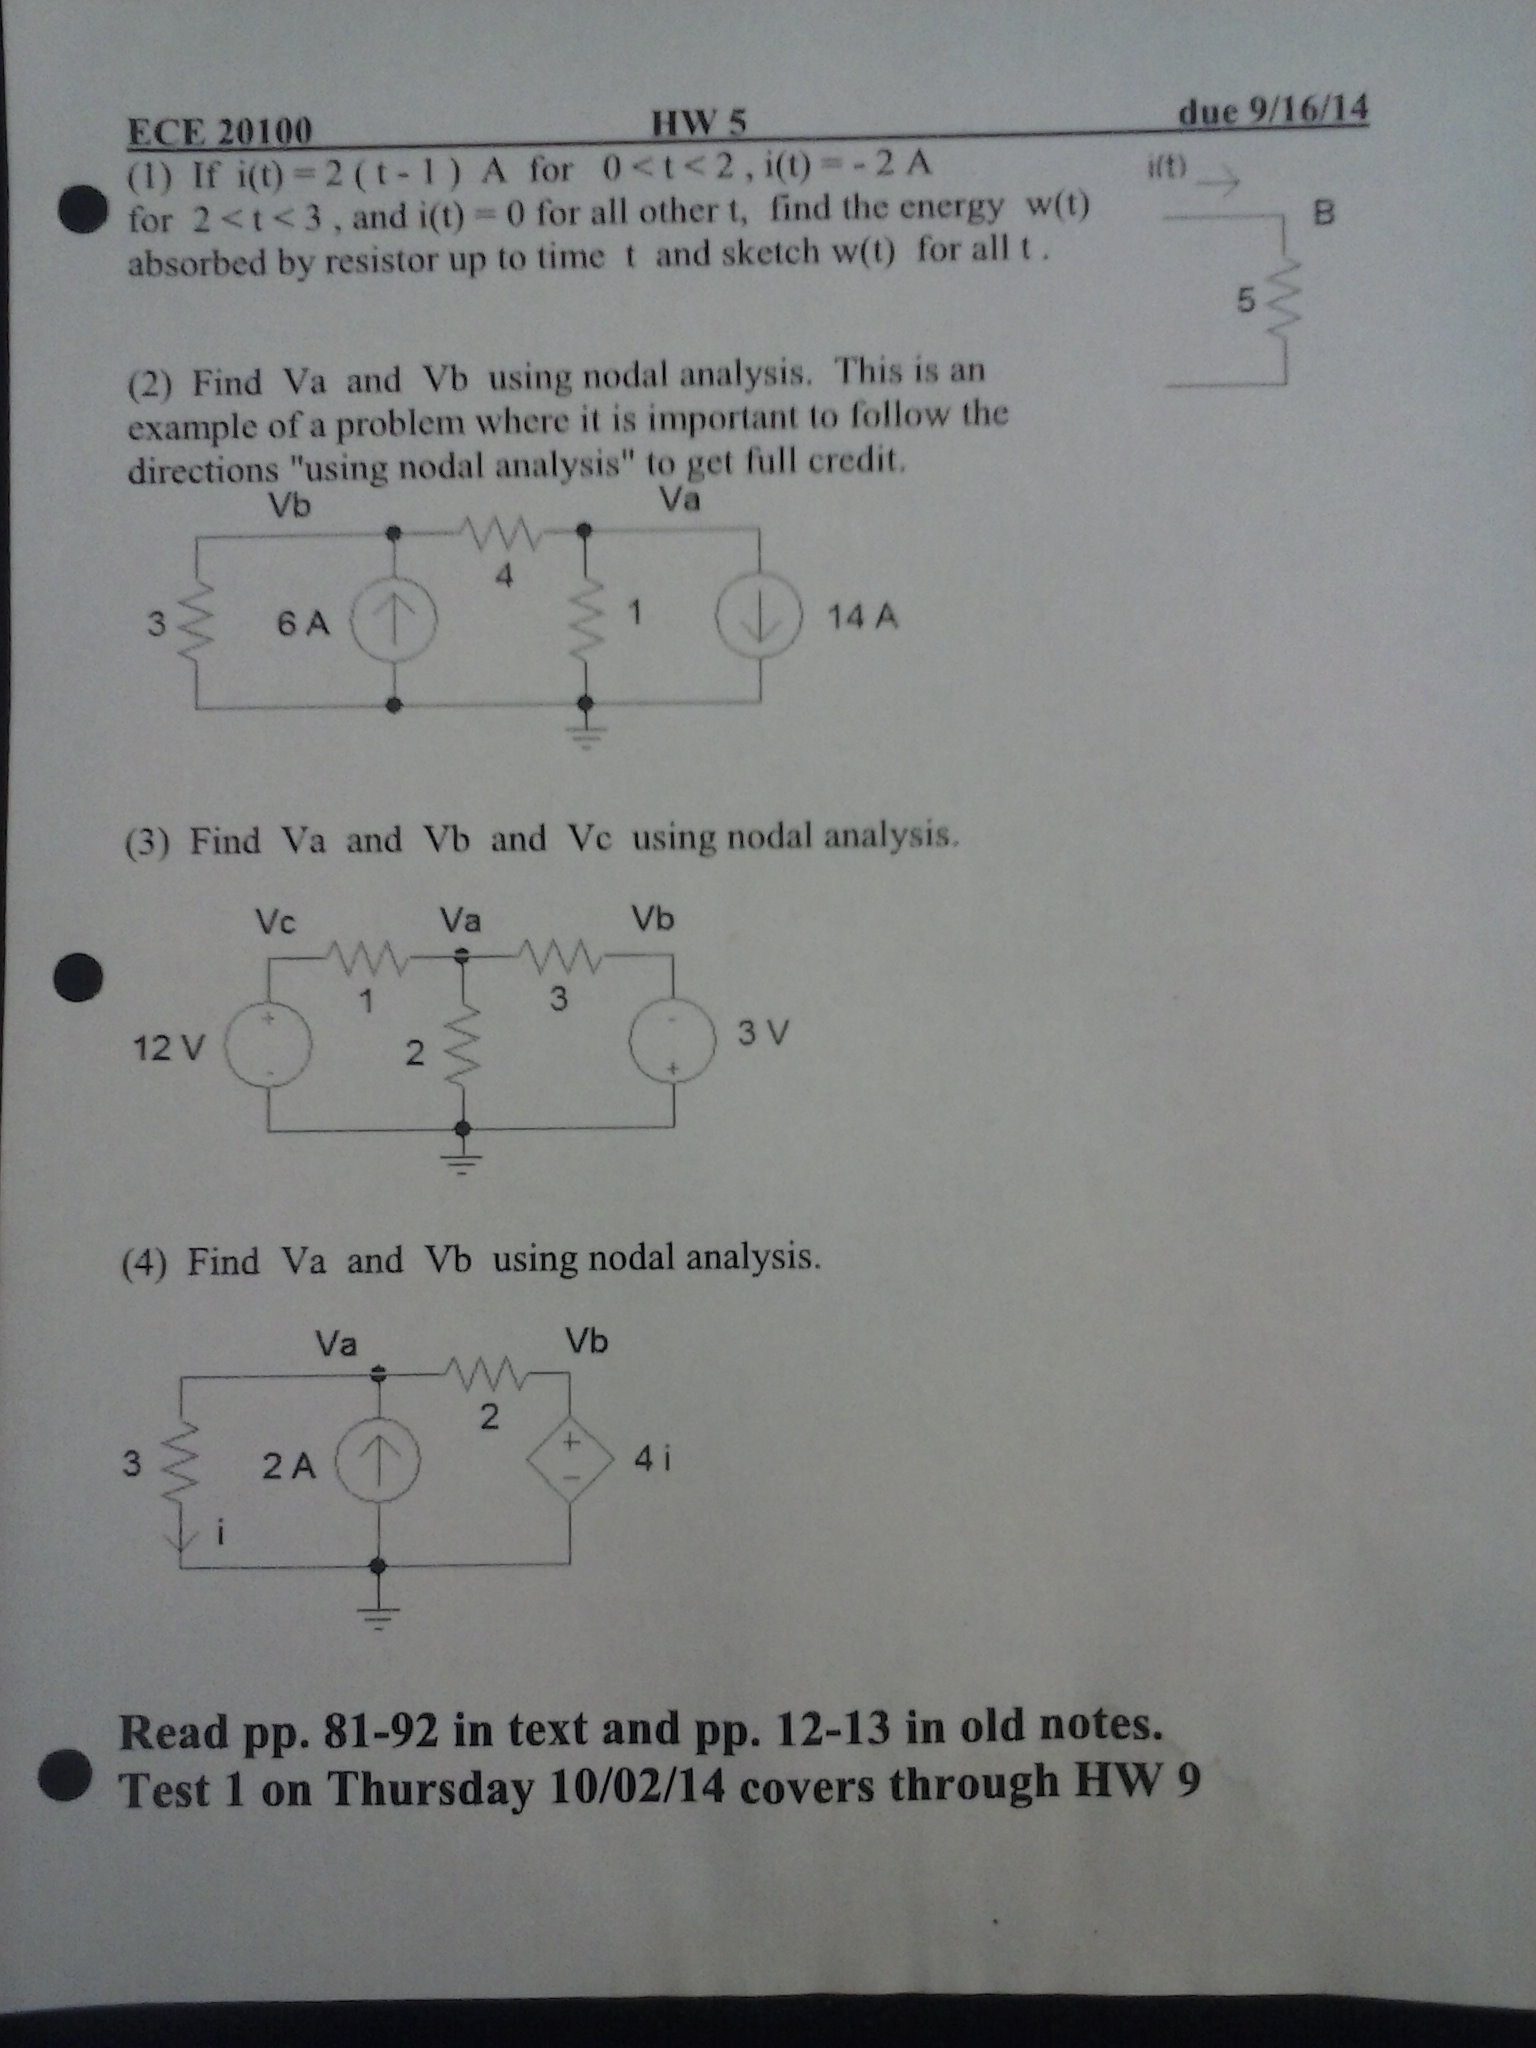 Can you help explain this homework question please?